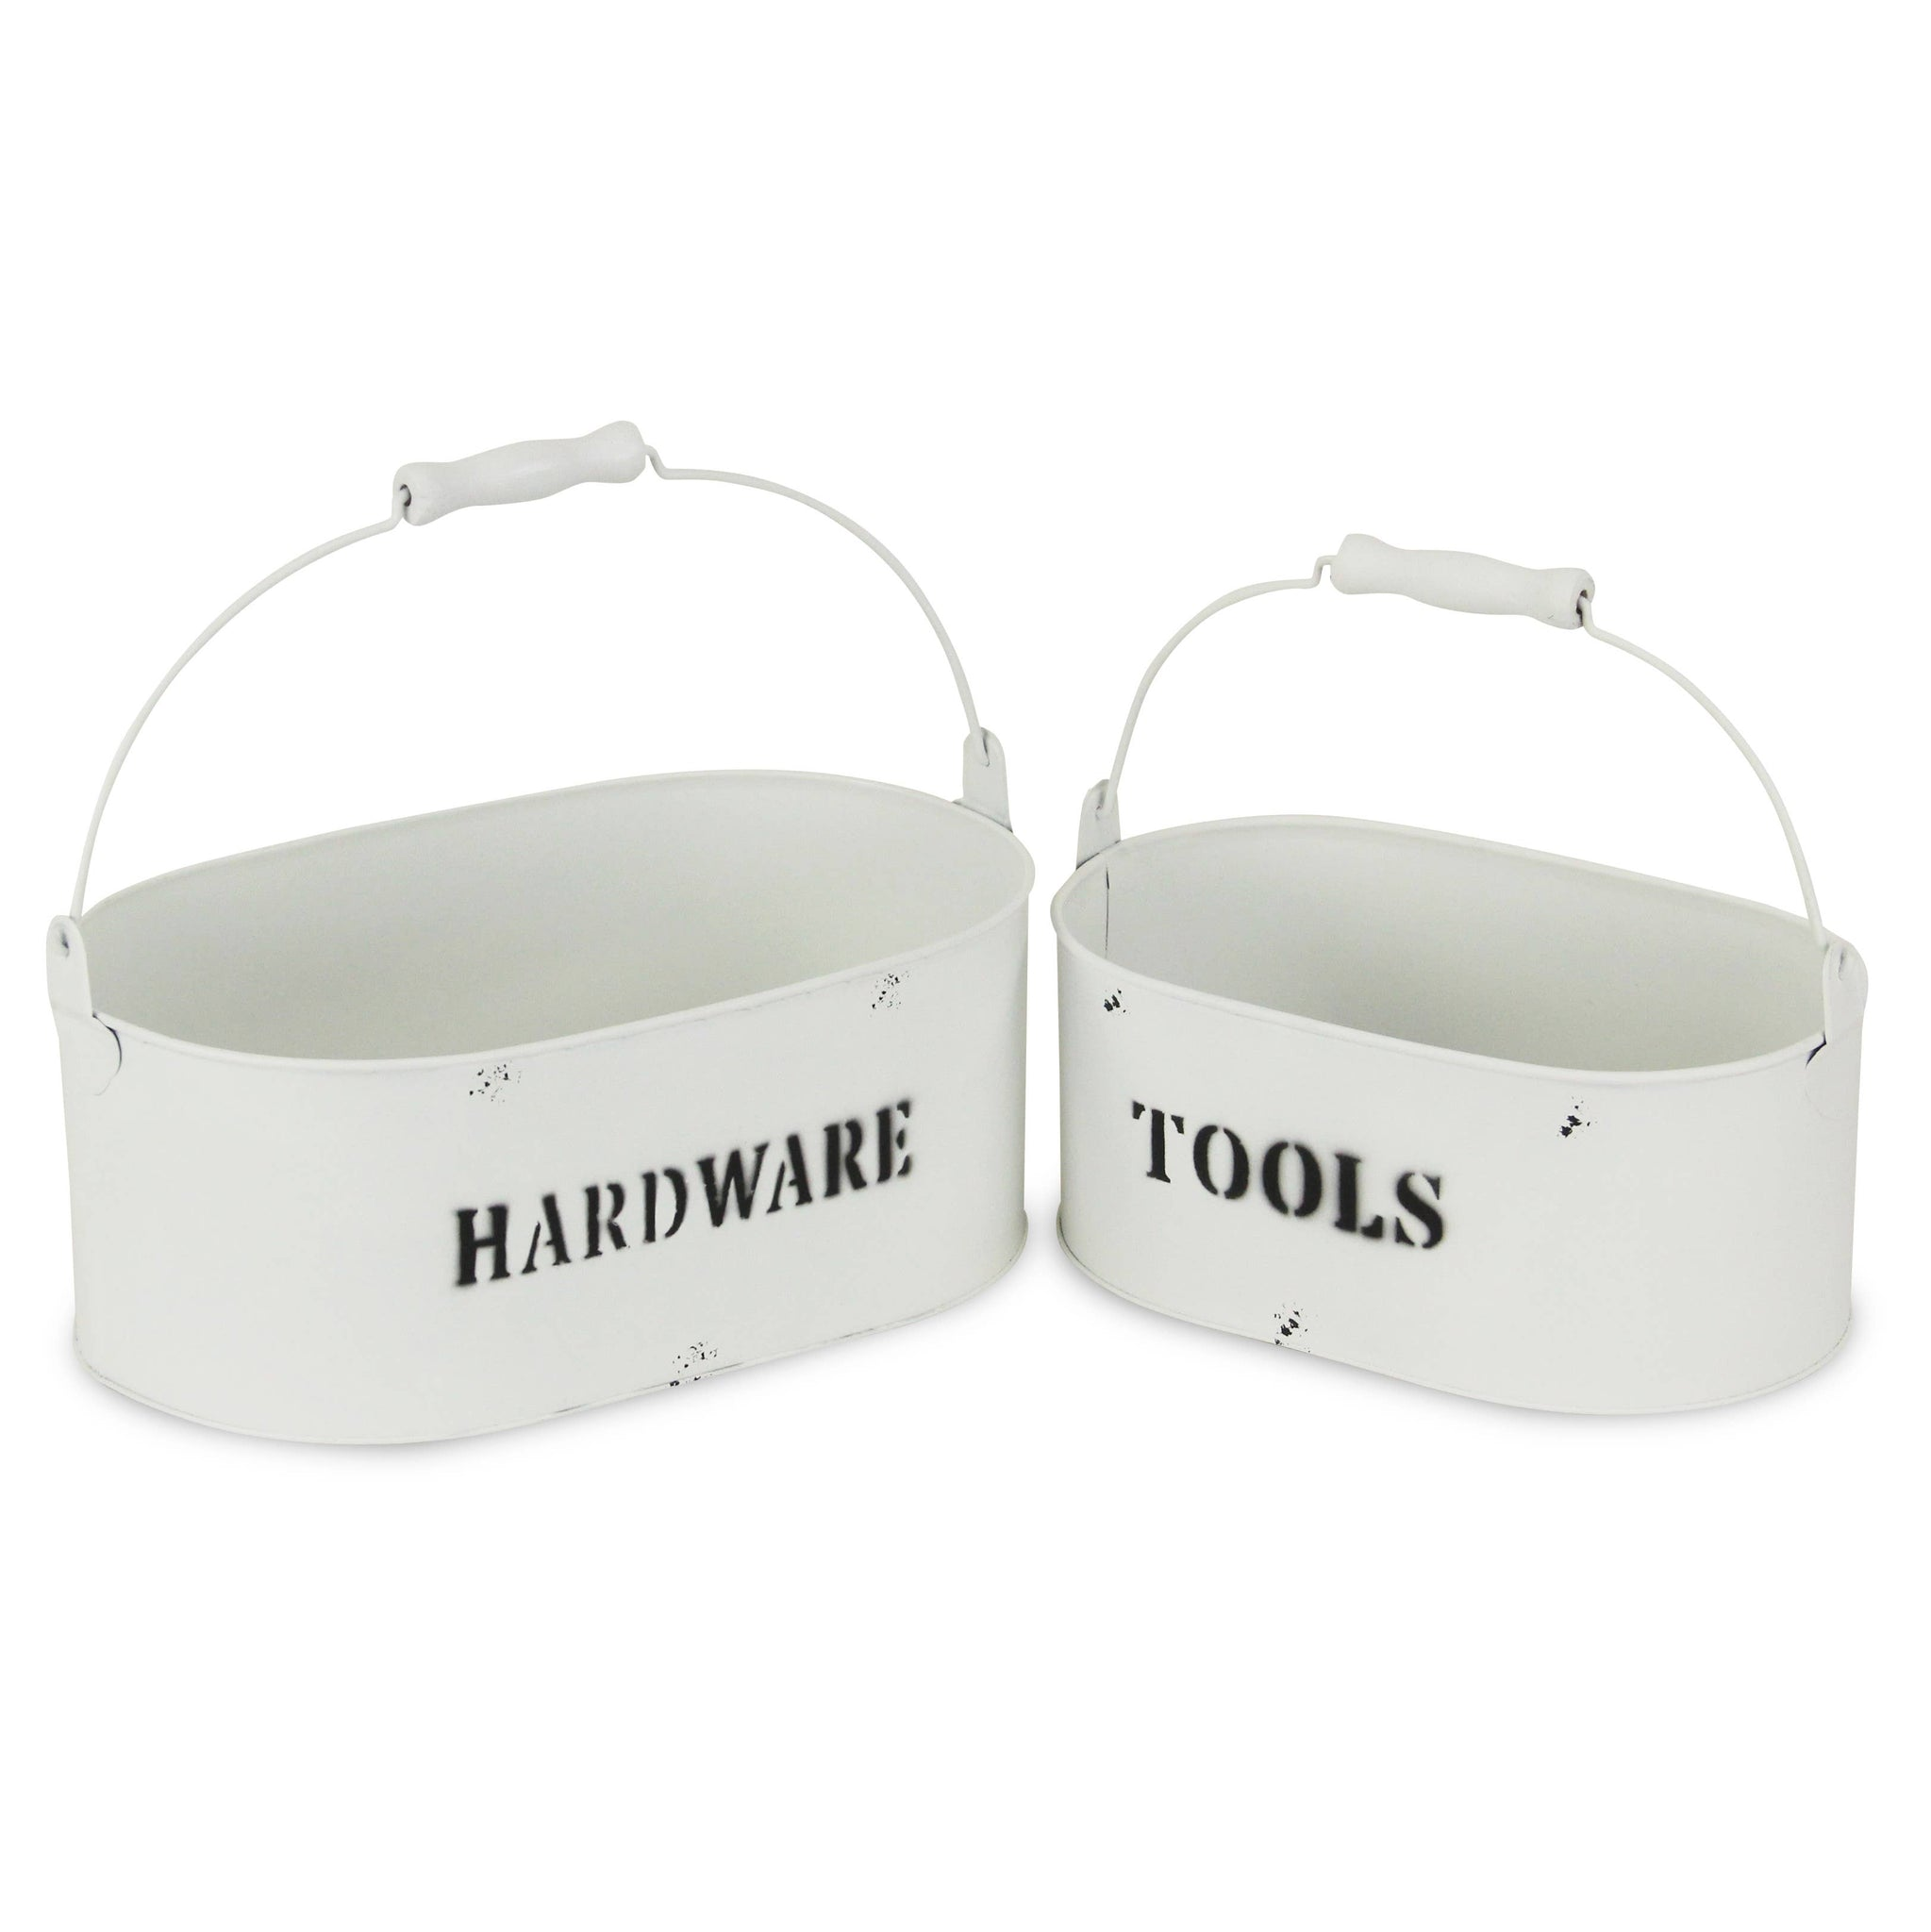 Set of 2 Galvanized Metal Caddy - White